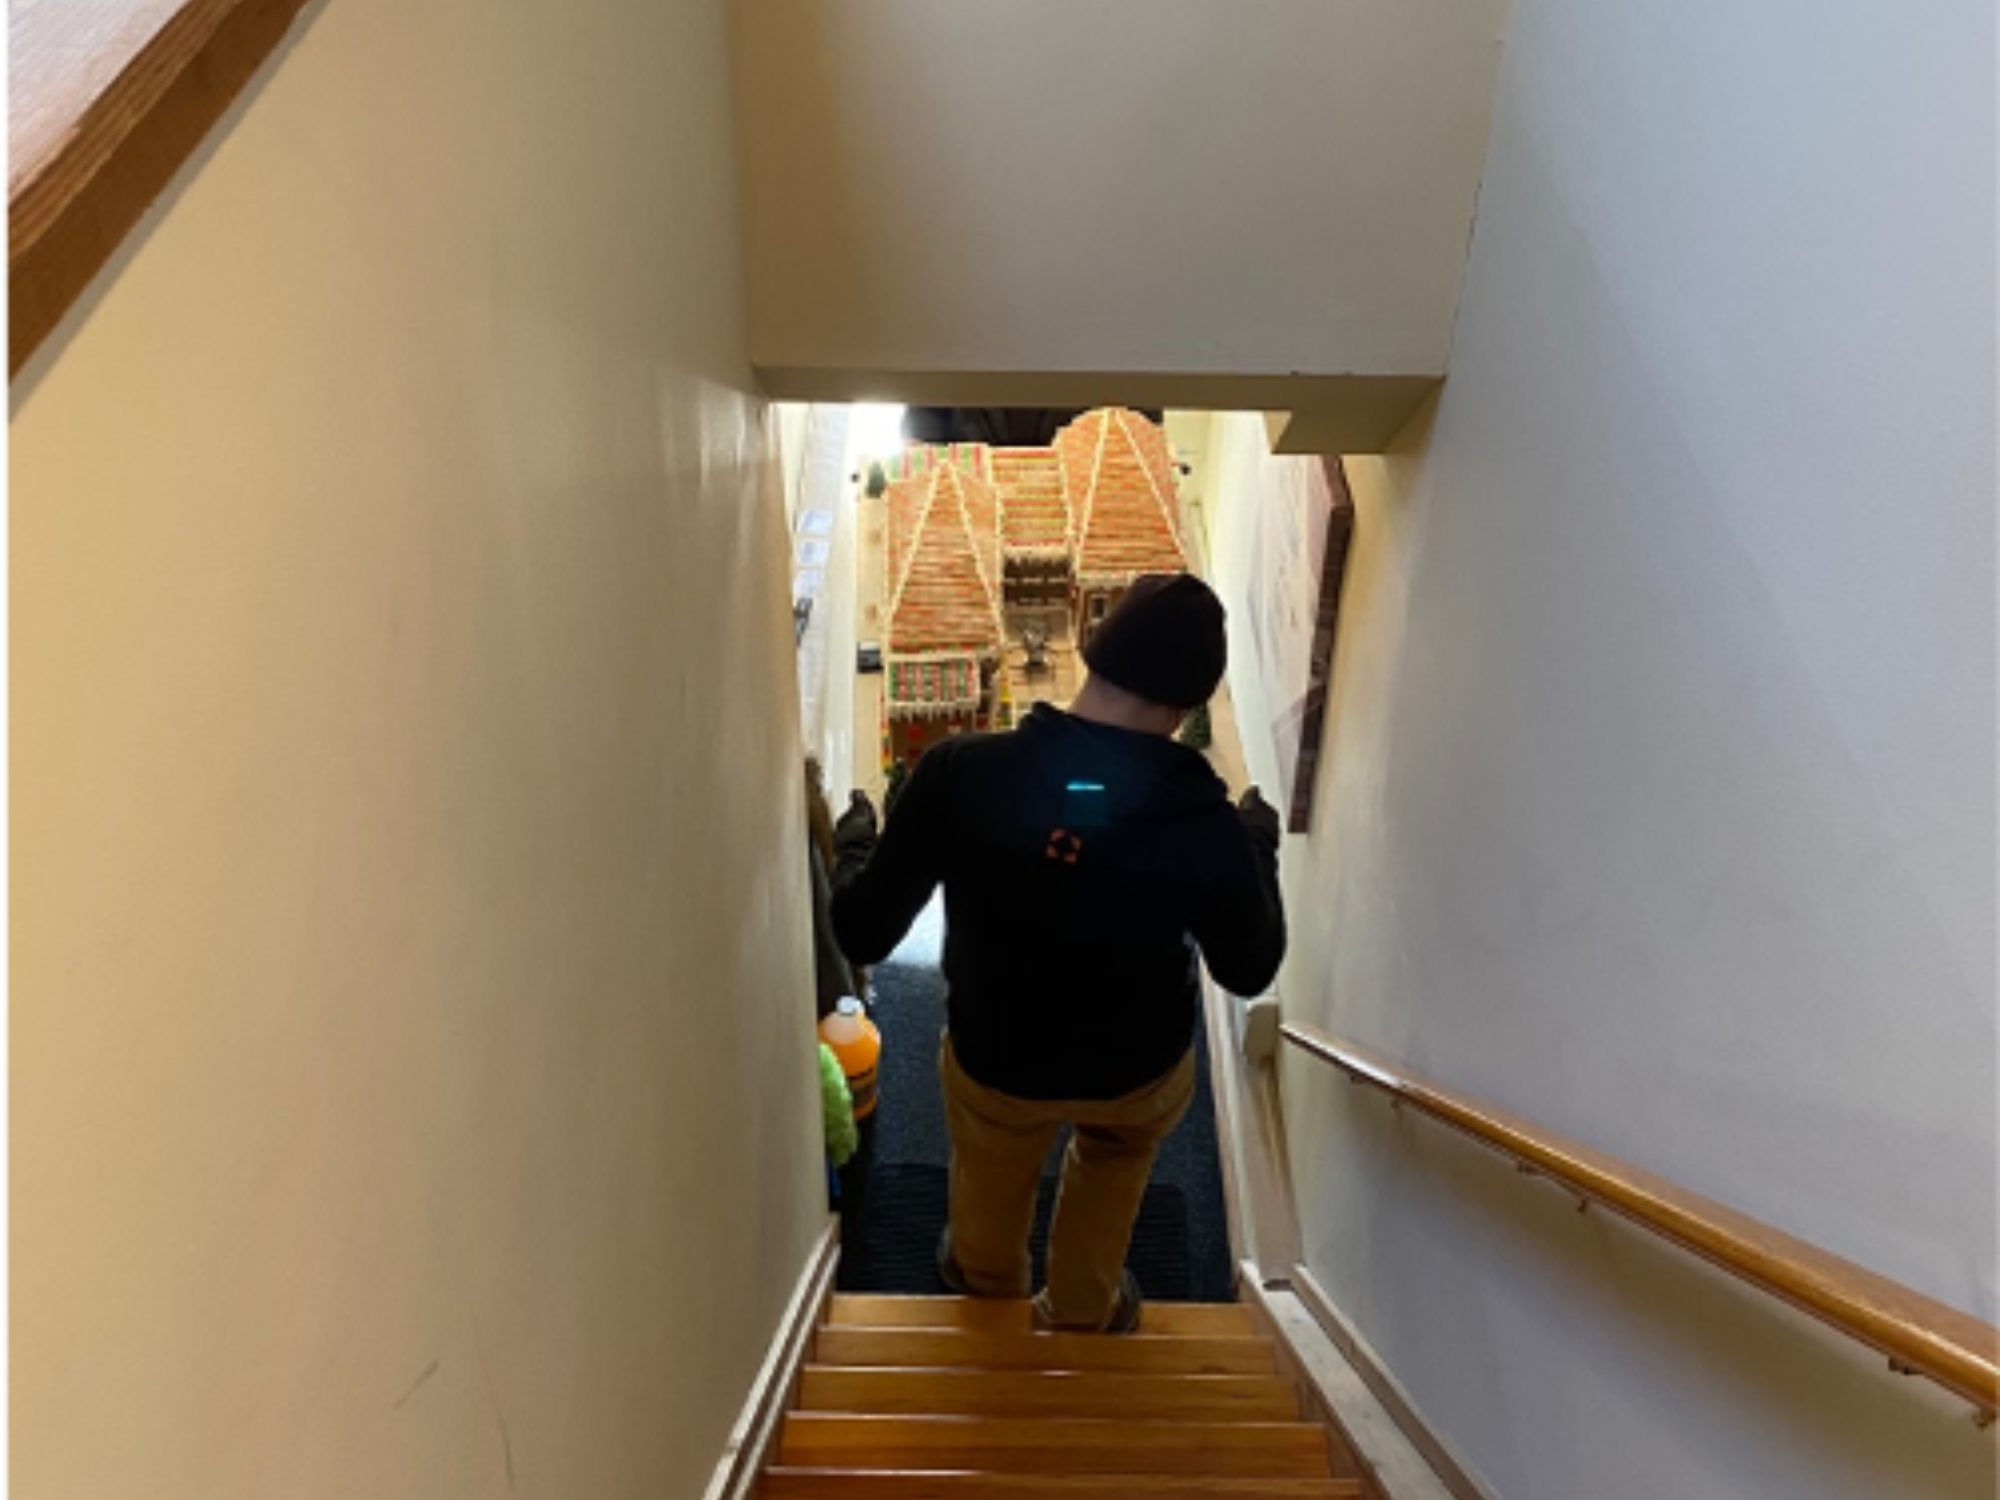 Two art handlers move Caitlin's gingerbread house down the stairs